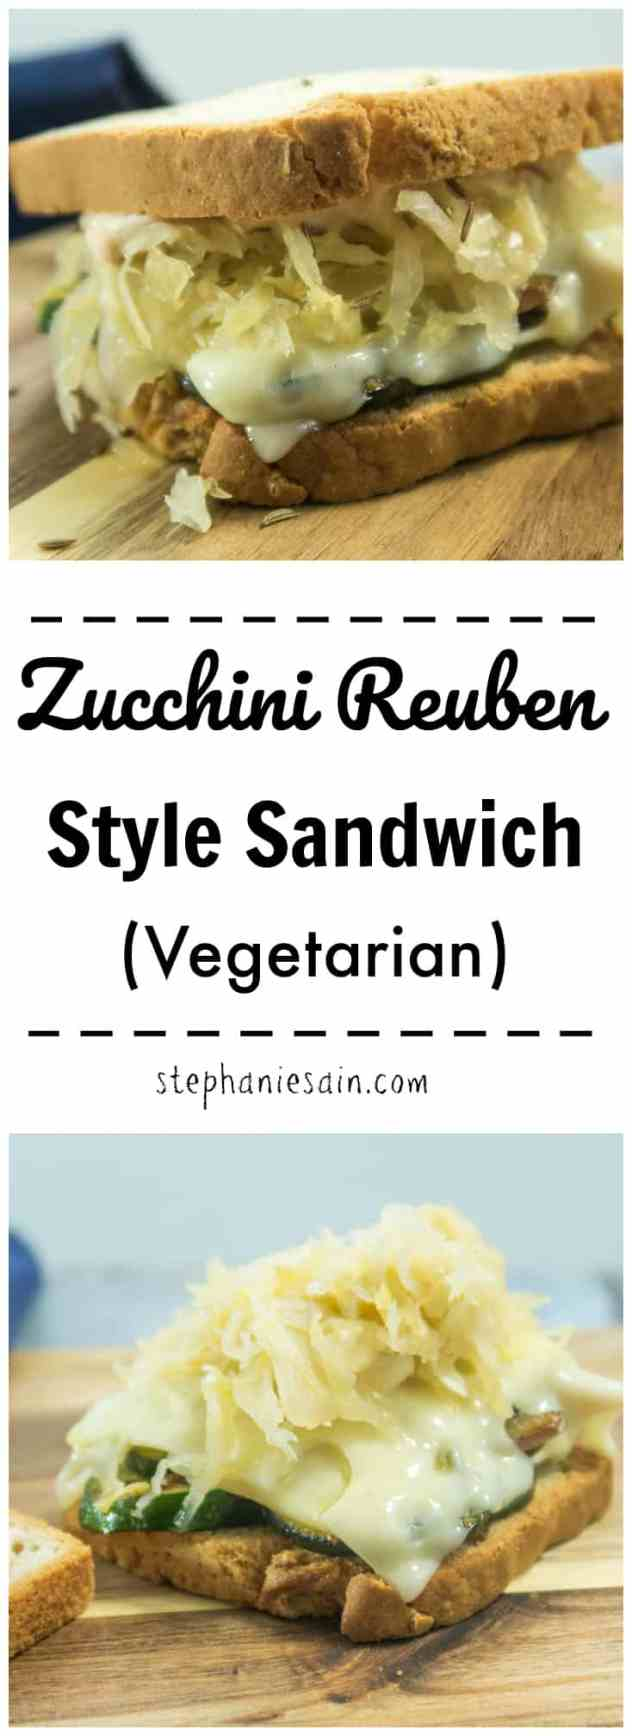 This Zucchini Reuben Style Sandwich is piled high with zucchini, red onion, Swiss cheese, & sauerkraut. Then layered between two slices of rye bread and a homemade thousand island dressing. Vegetarian & Gluten Free.